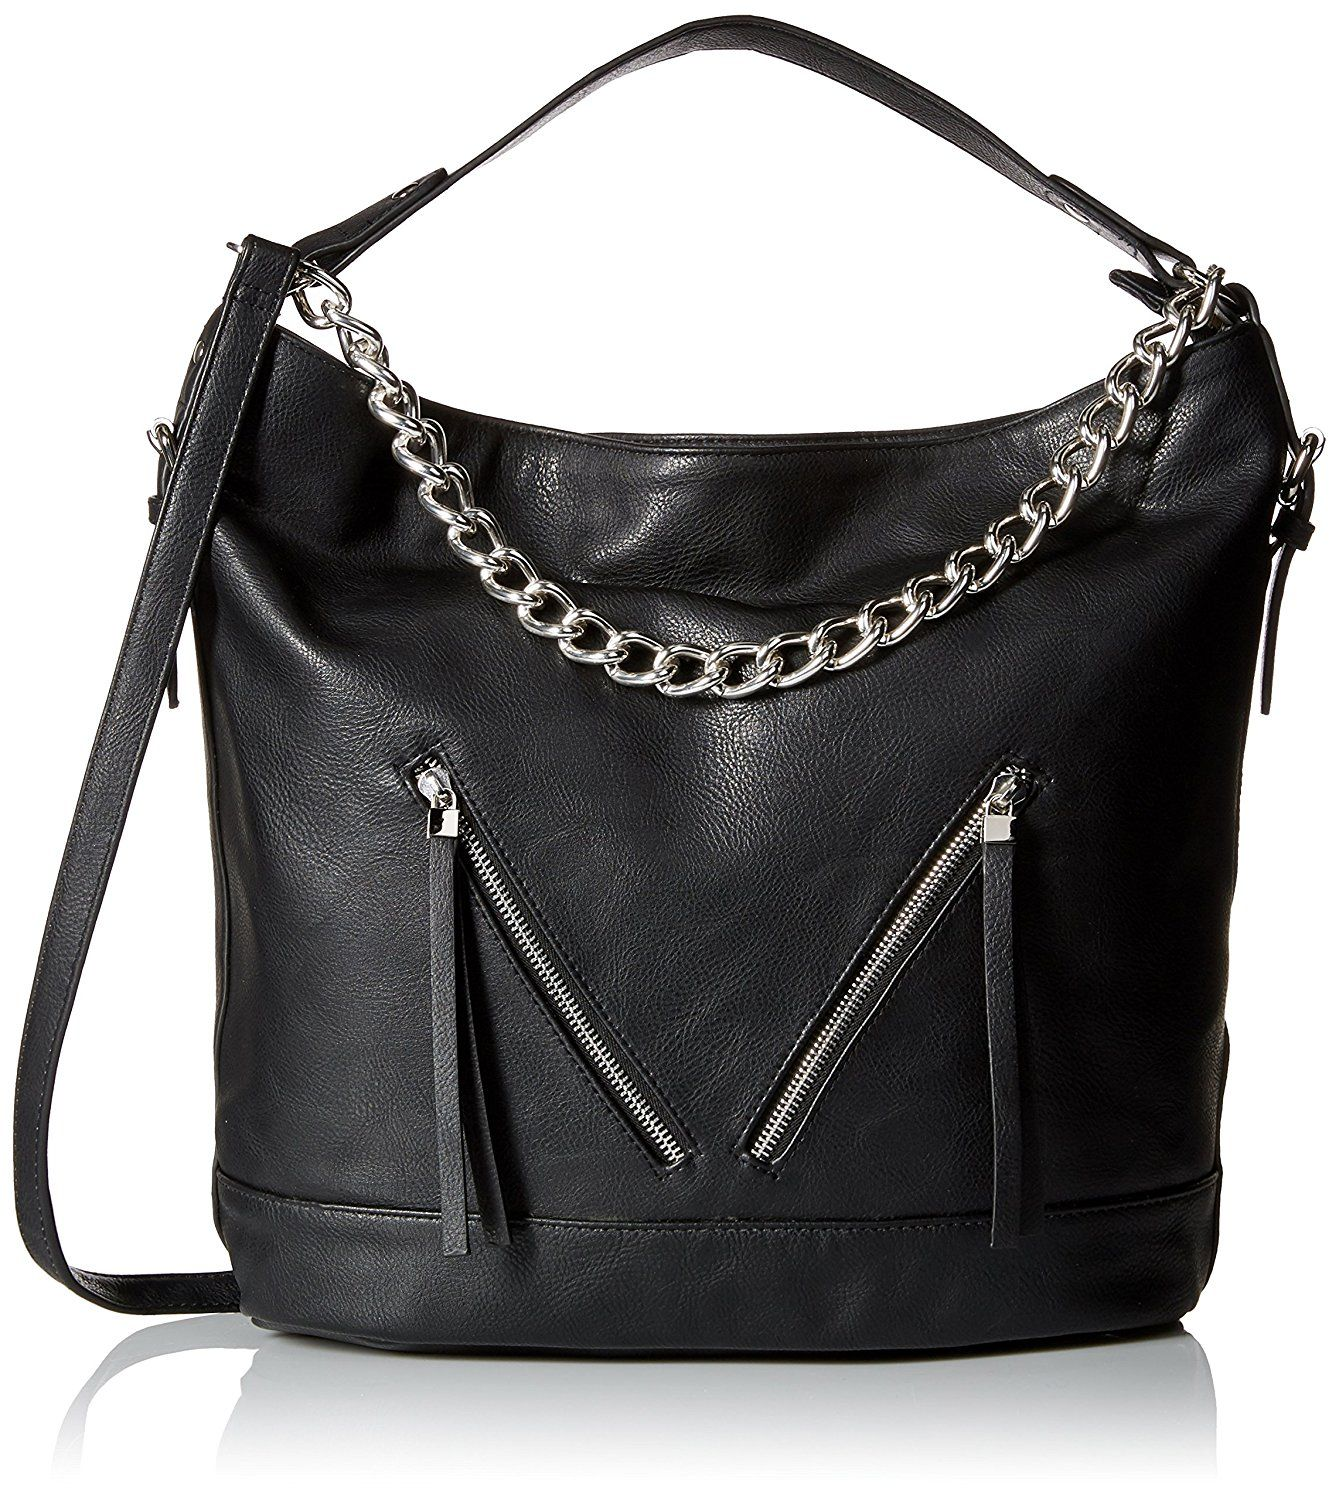 Dolce Girl Convertible Hobo with Chain Convertible Shoulder Bag ... 717079b61002c